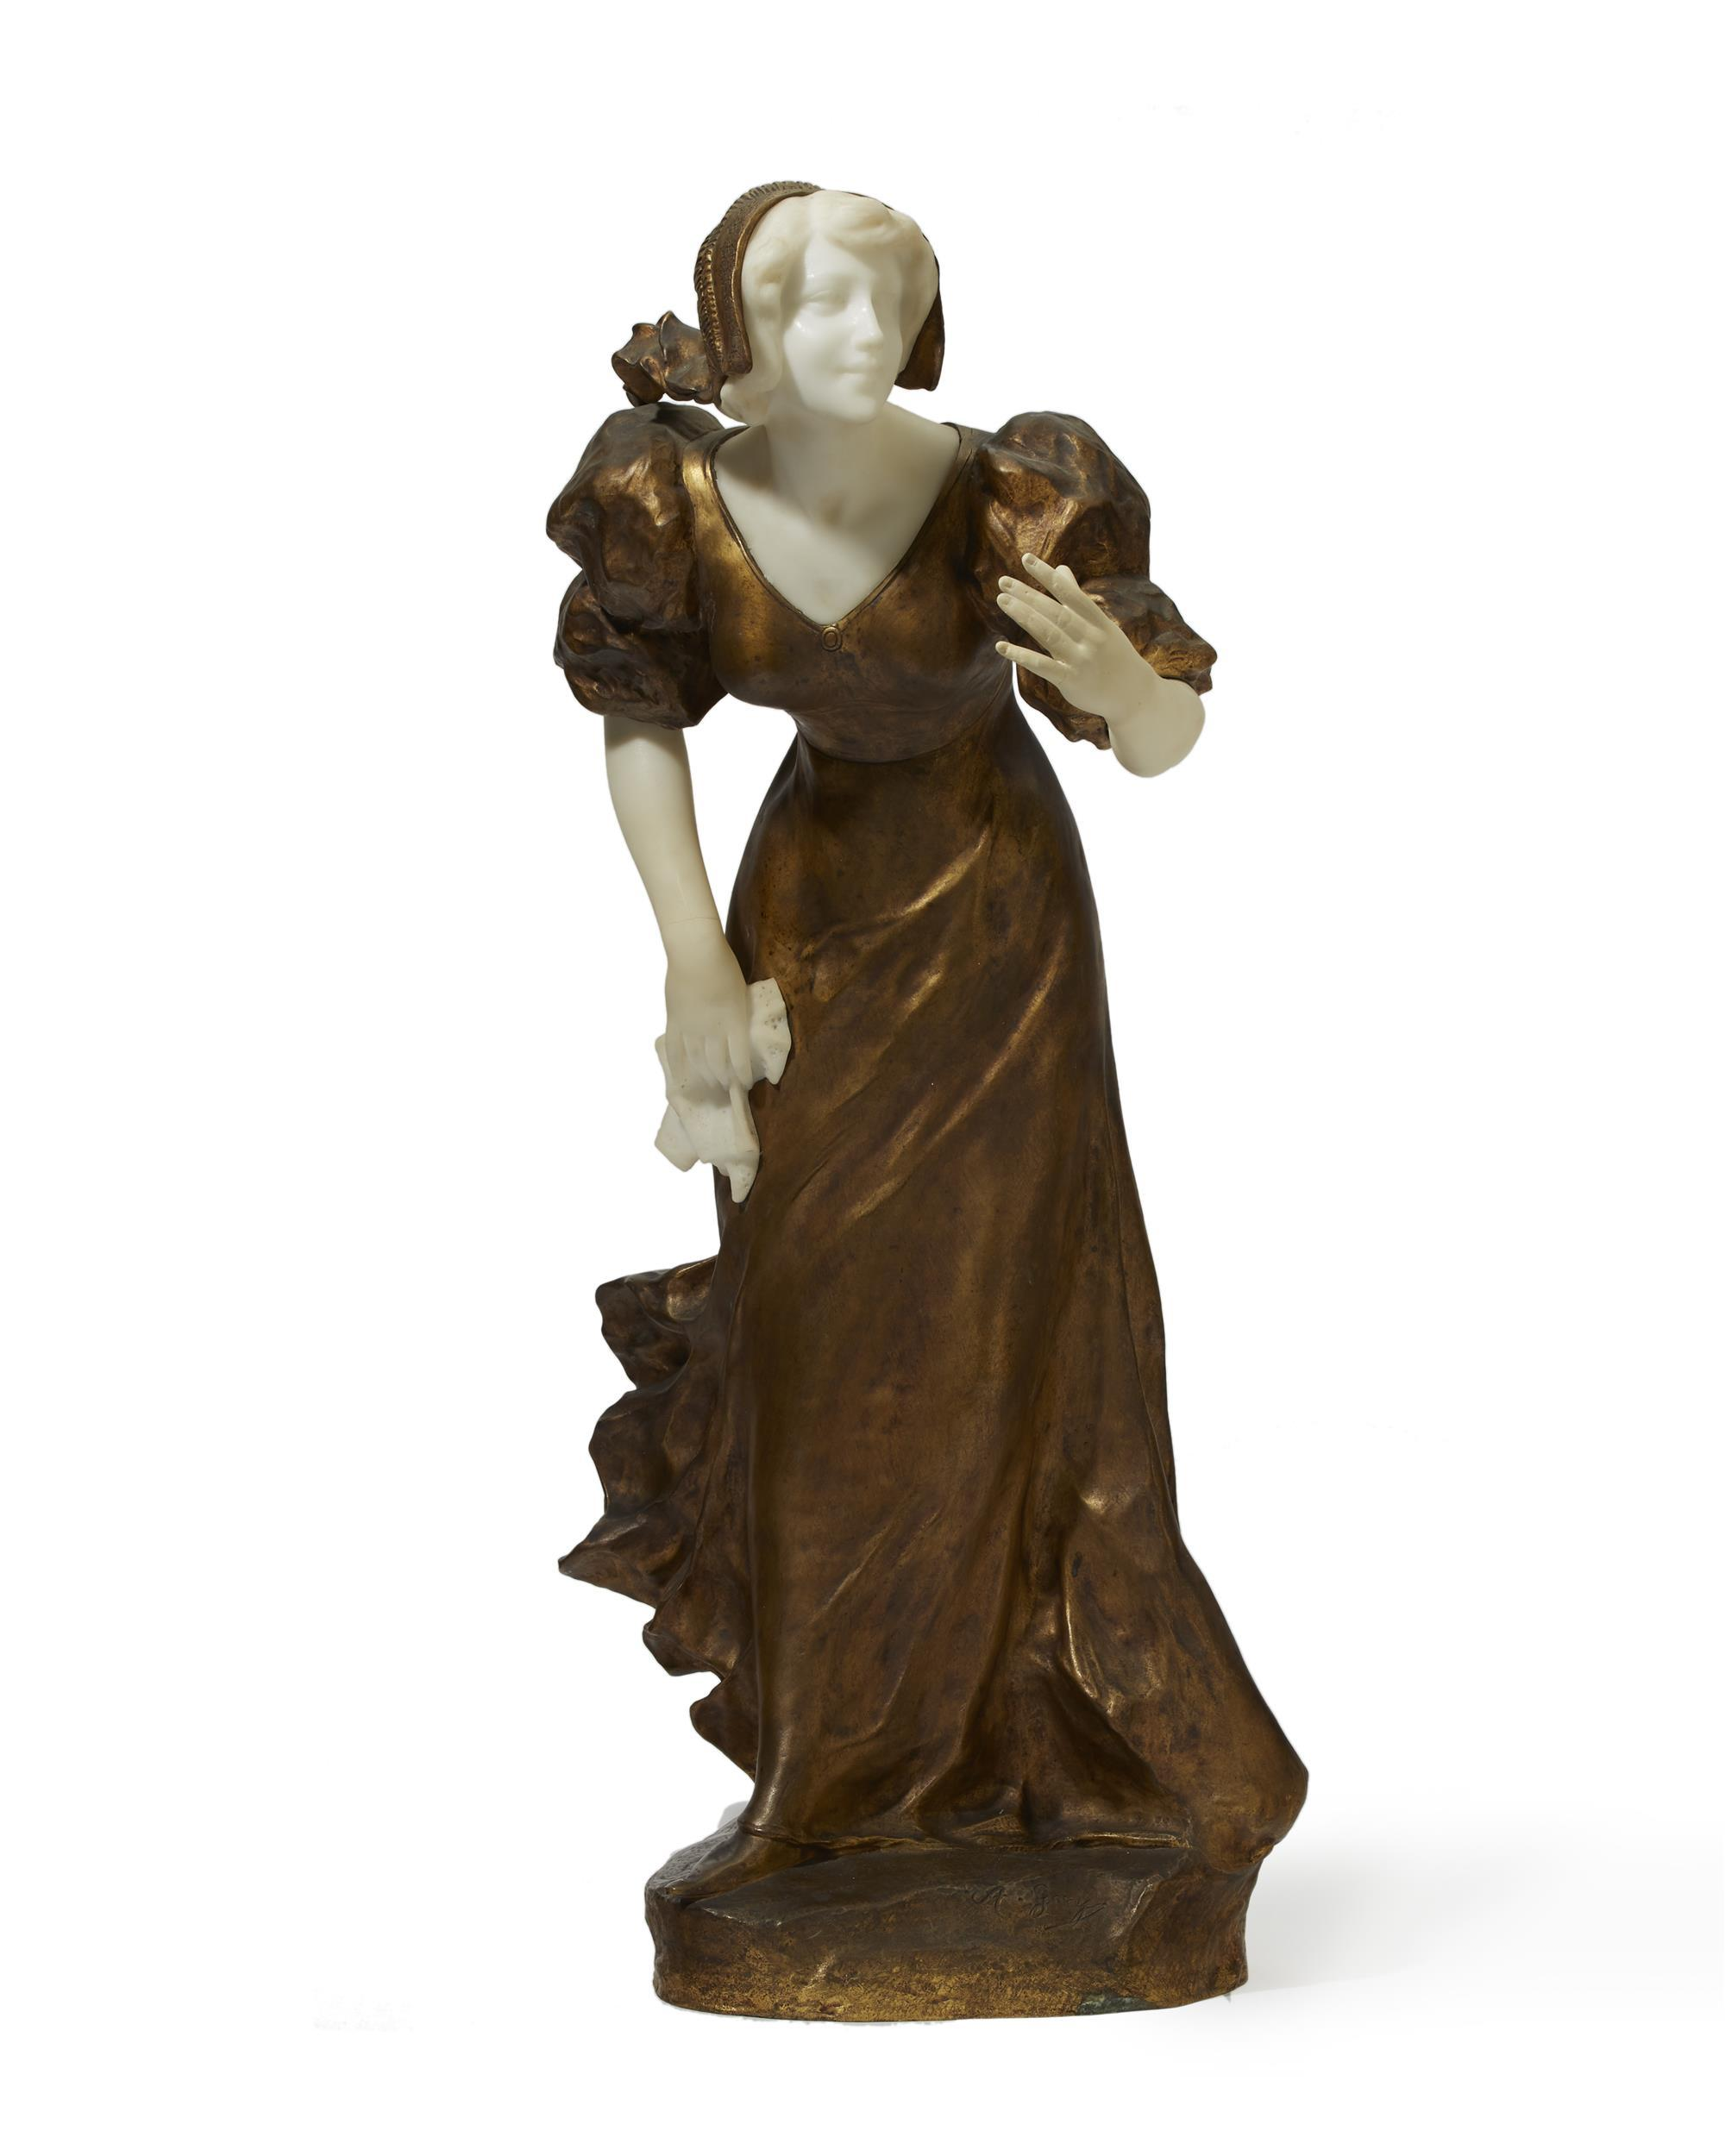 "Affortunato (Fortunato) Gory, (1895-1925 Italian/French), Walking lady, Gilt-bronze and alabaster, 27.5"" H x 14"" W x 11"" D"